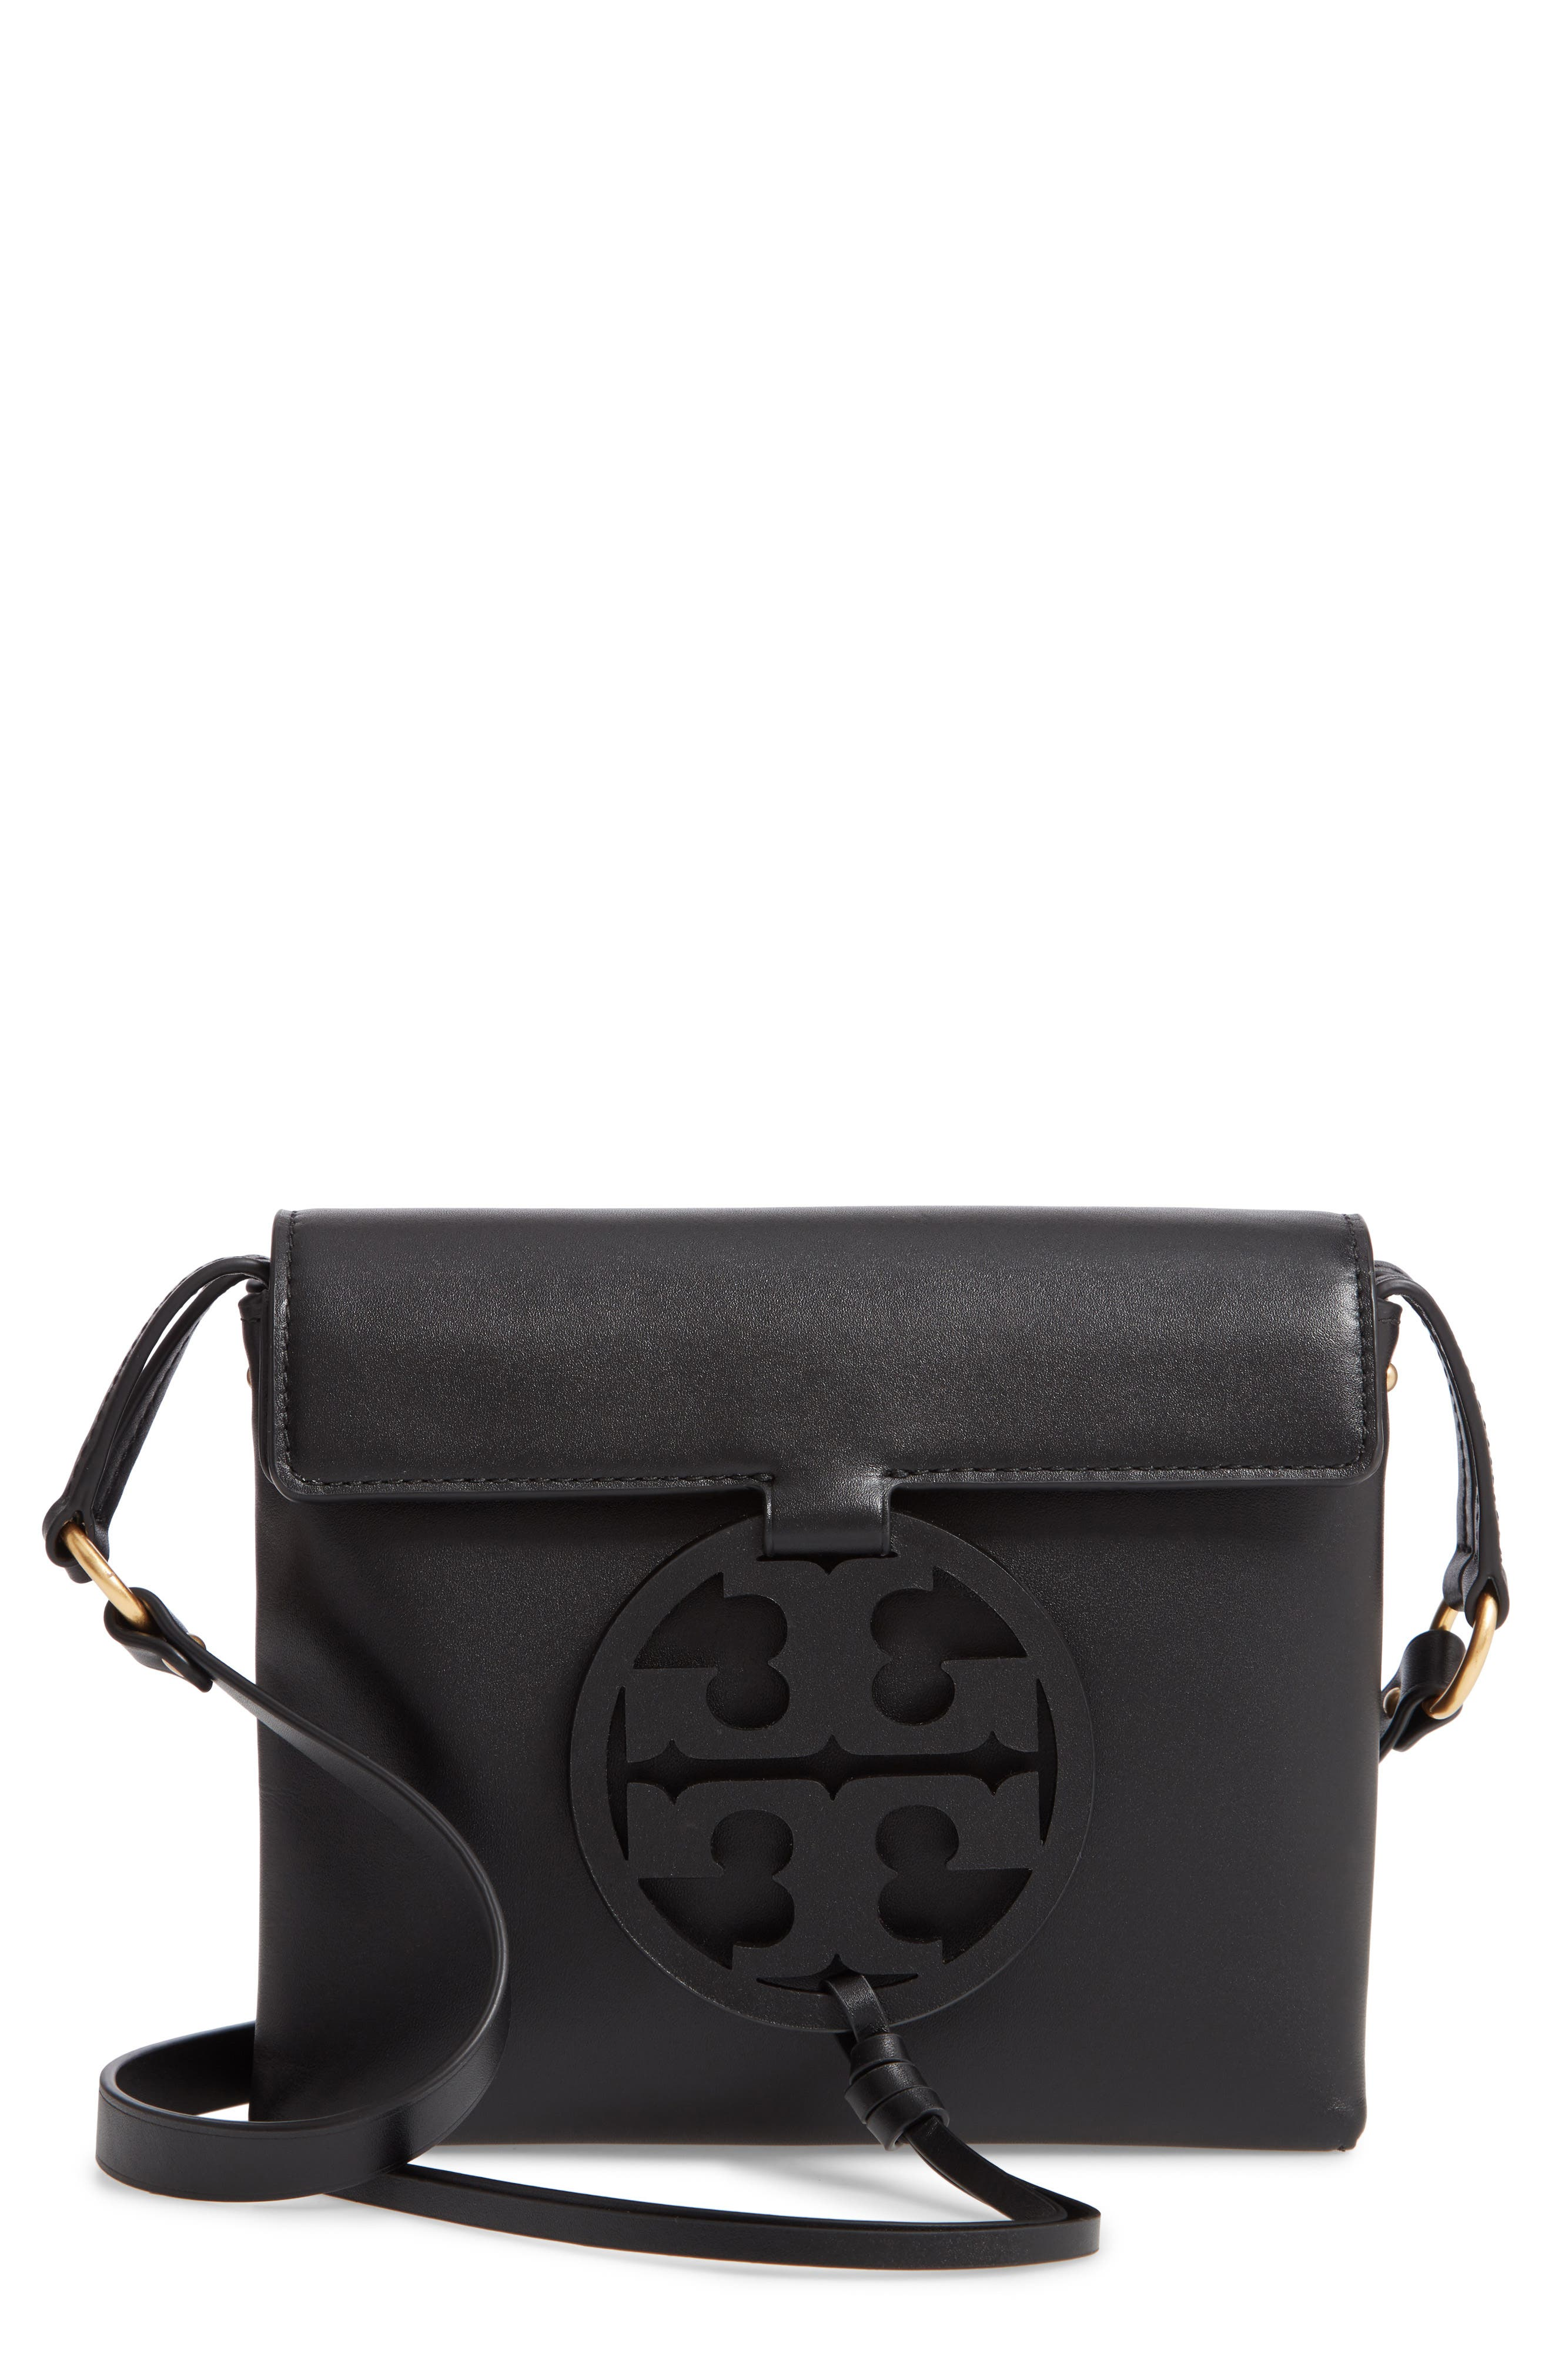 Miller Leather Crossbody Bag,                             Main thumbnail 1, color,                             BLACK